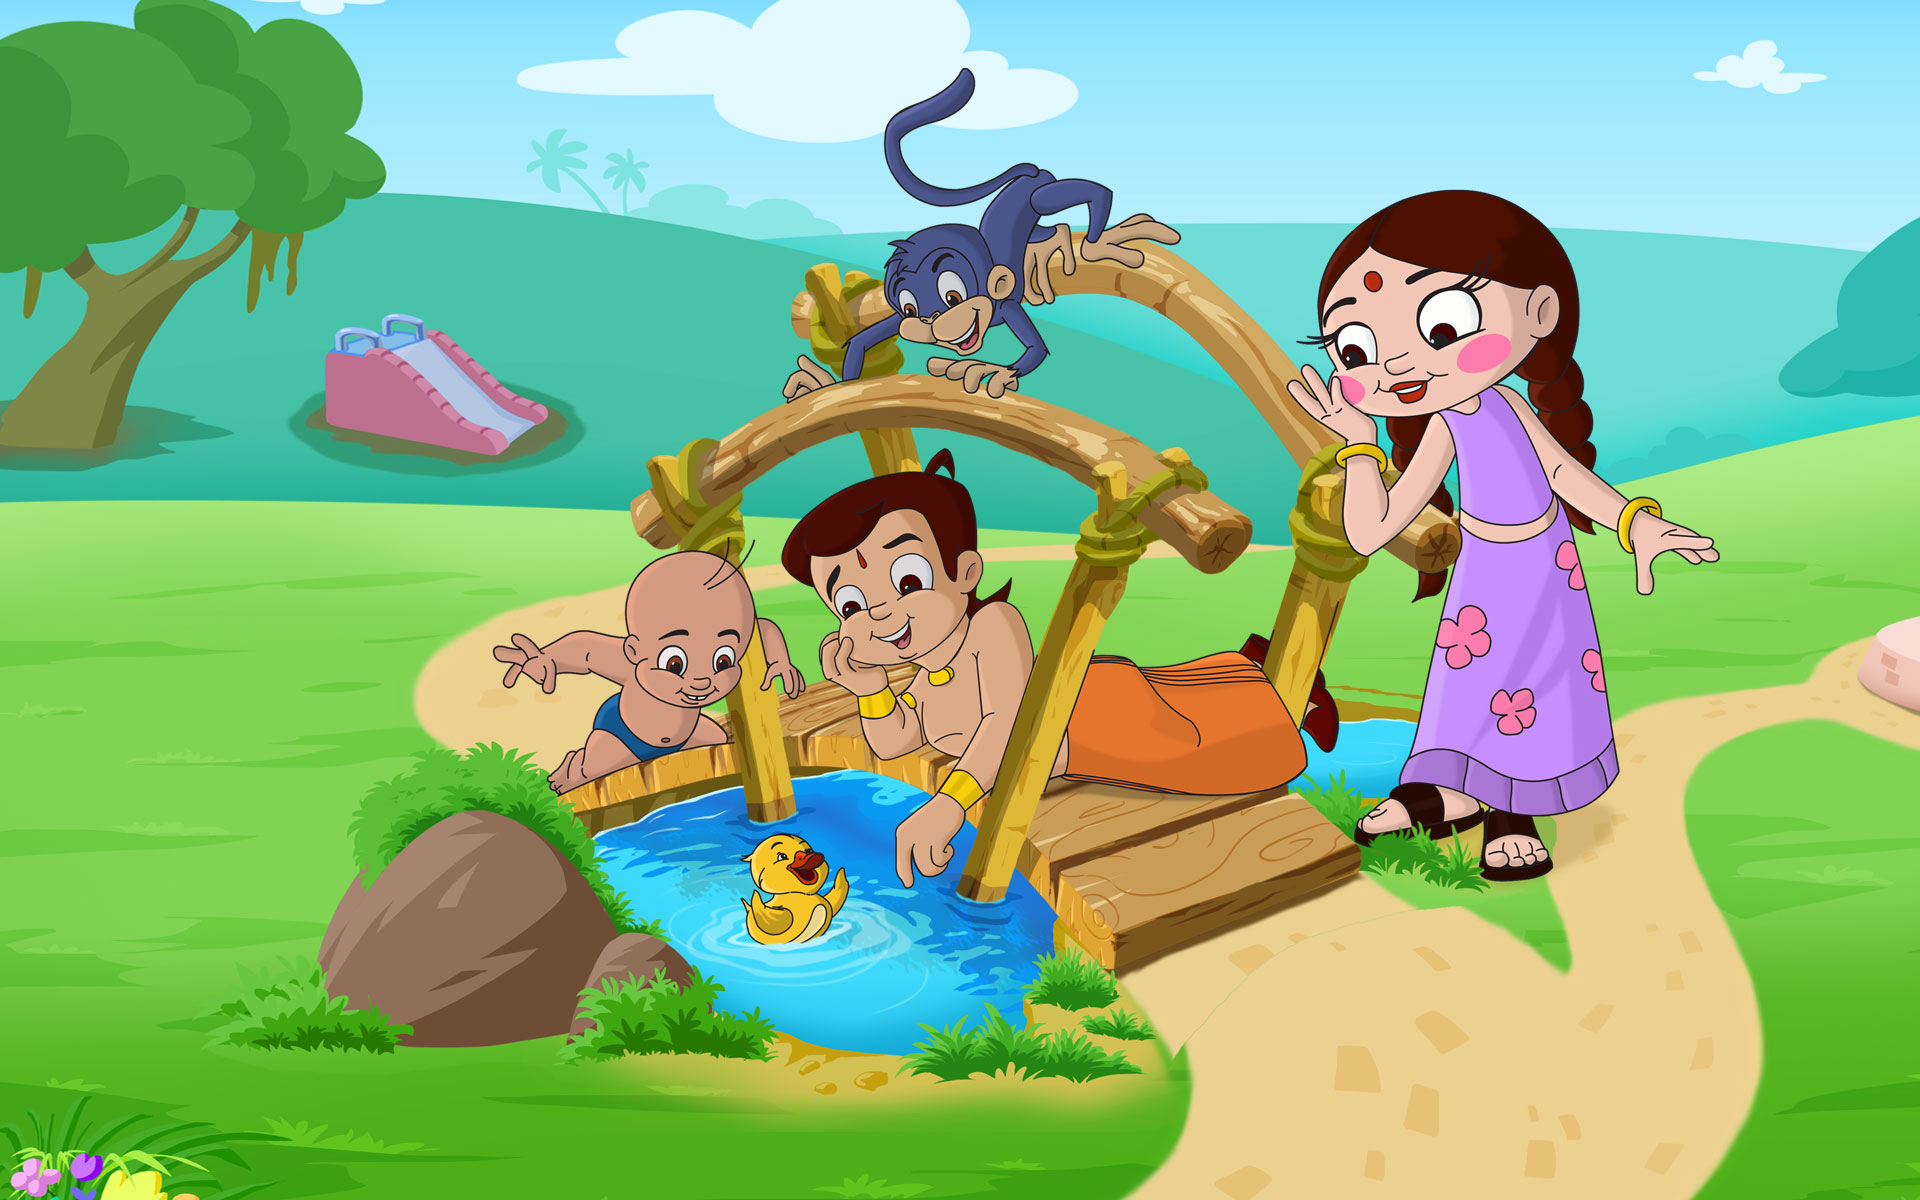 Chhota Bheem Hd Wallpapers Background Images Free Downloads